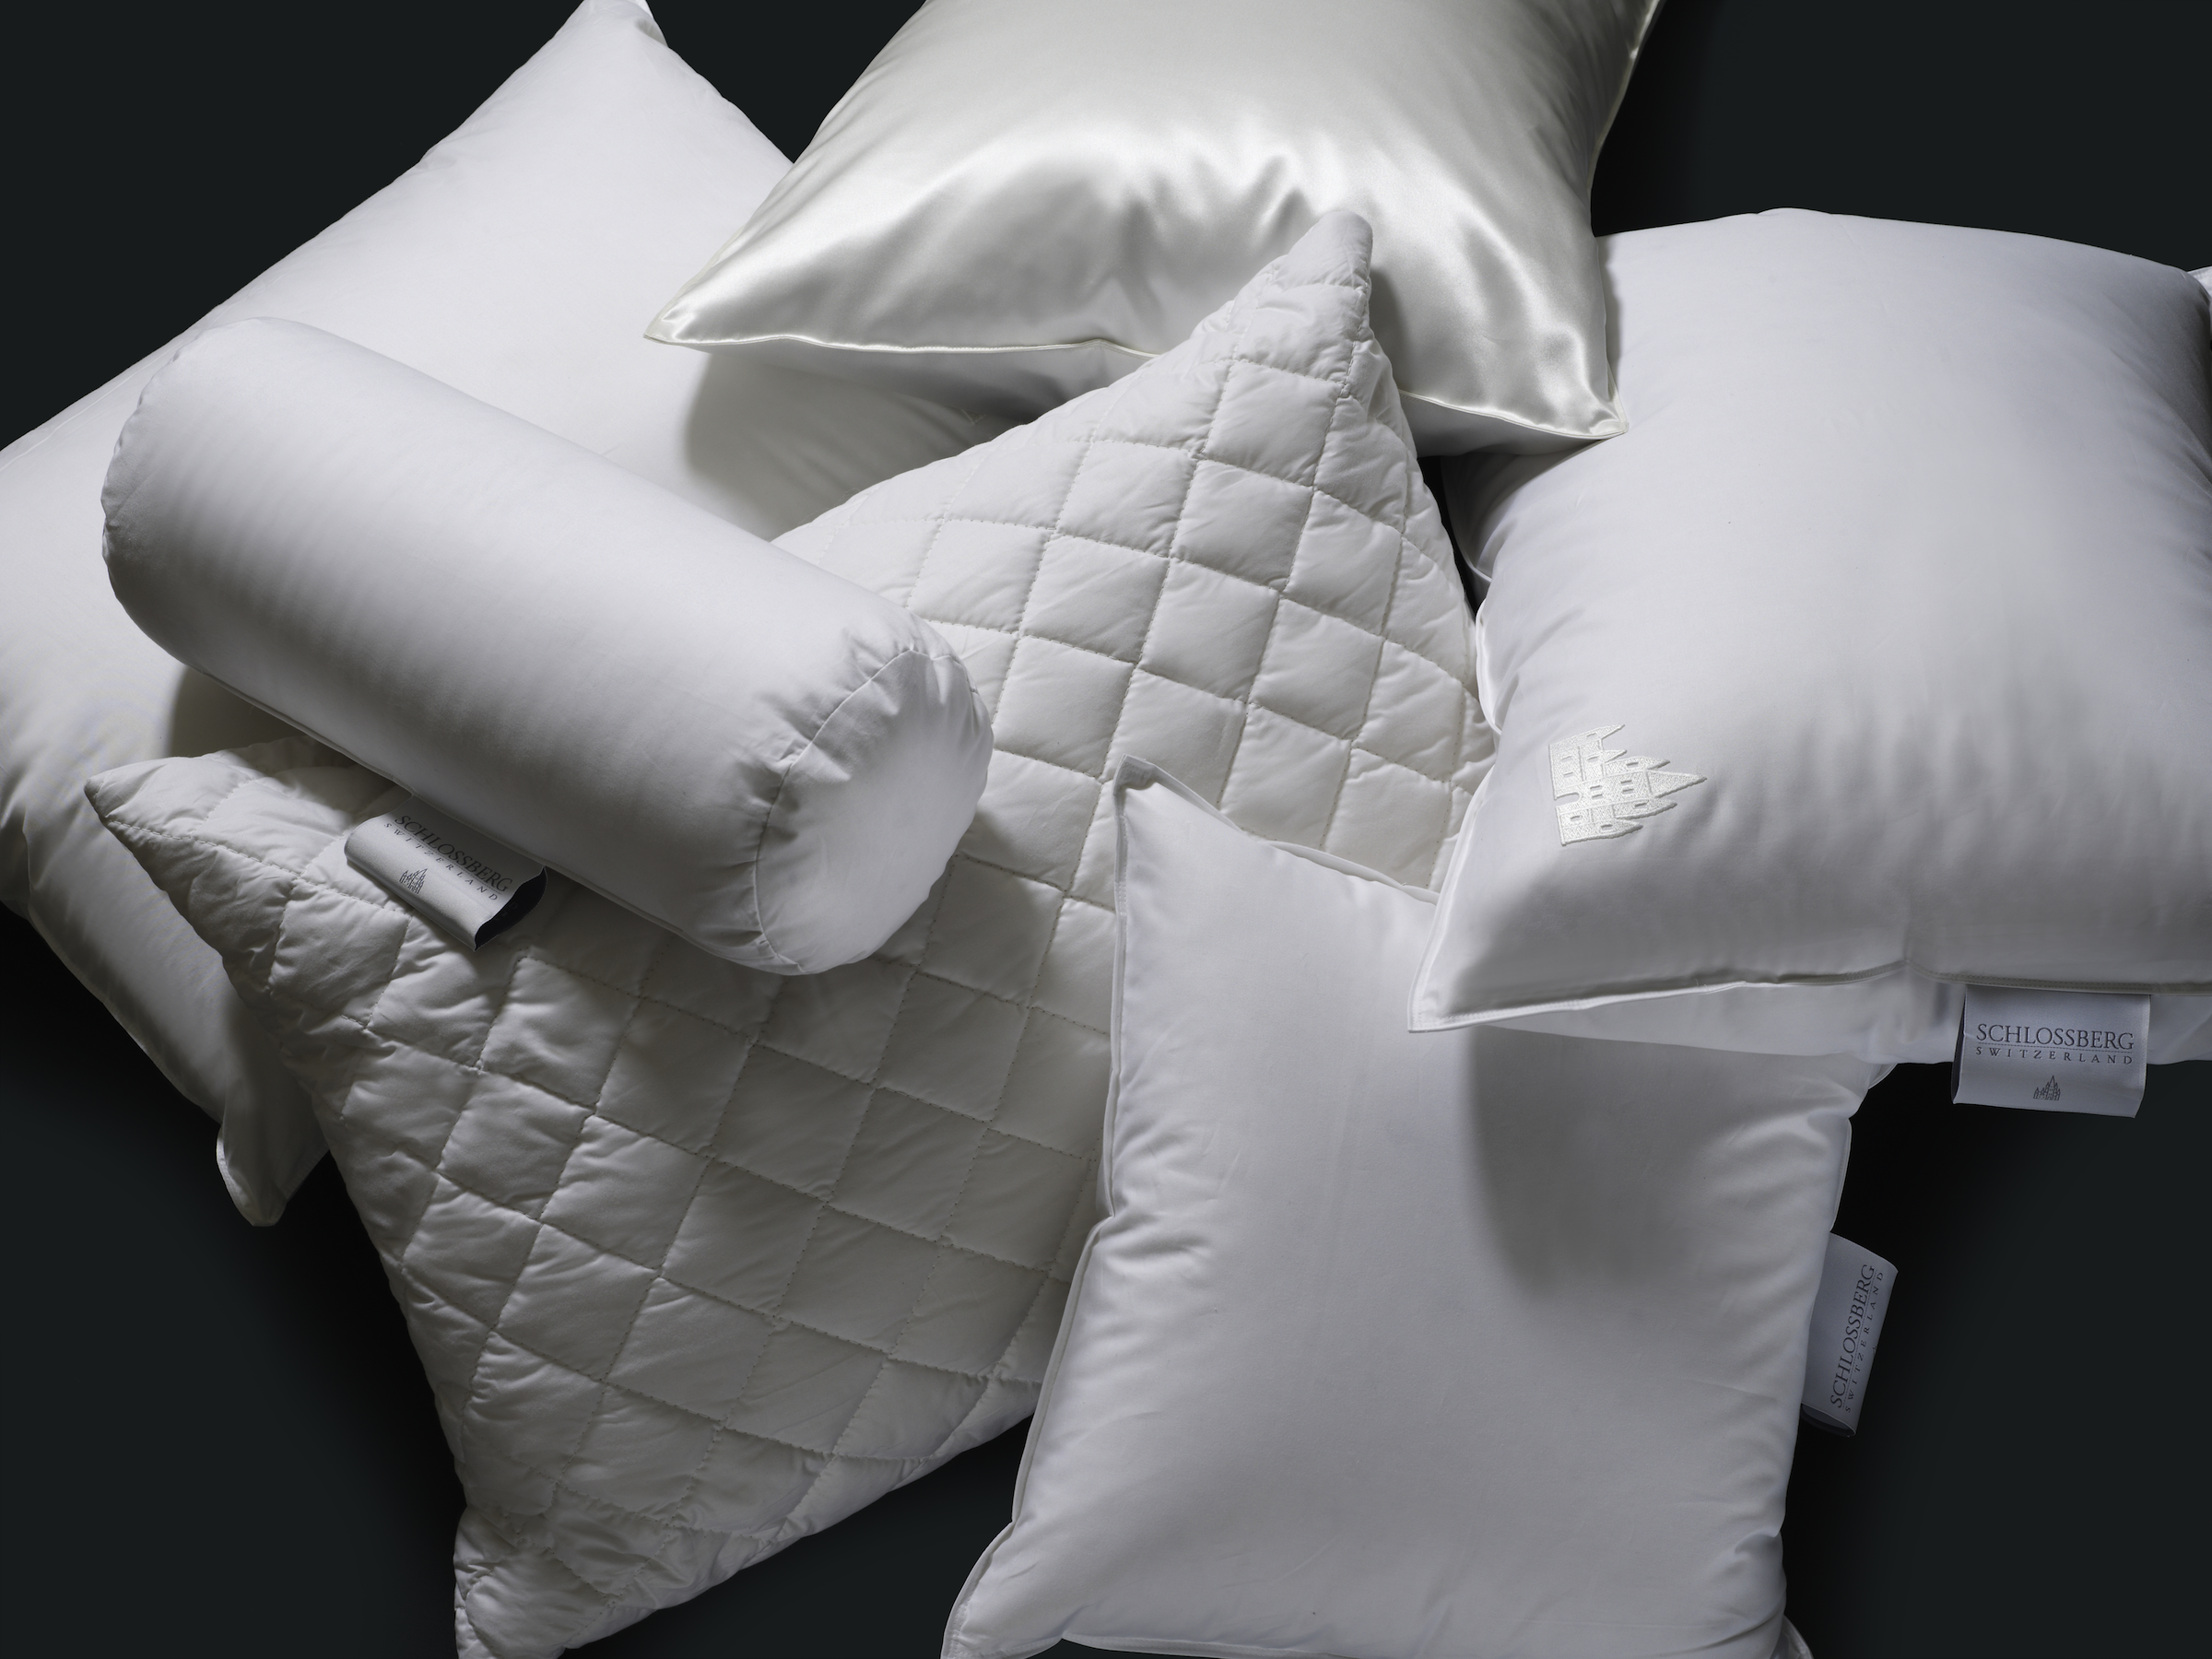 Support your neck for a sound sleep with pillows and